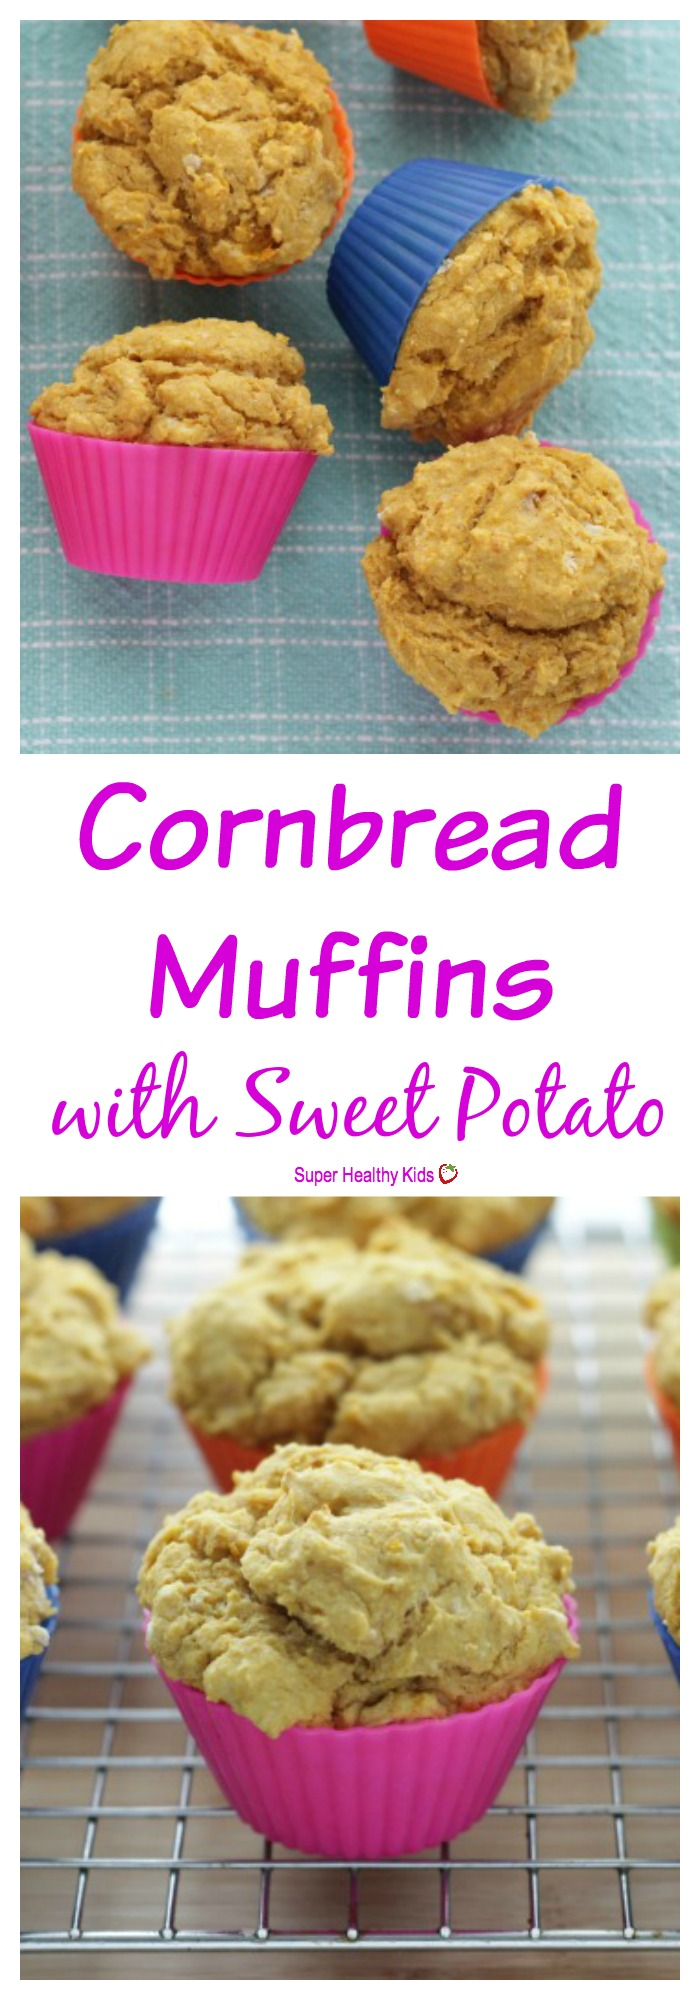 FOOD - Cornbread Muffins with Amazing Sweet Potato. Packed with sweet and nutritious sweet potato, your family will love these moist cornbread muffins. They are even dairy-, egg-, and nut-free! http://www.superhealthykids.com/cornbread-muffins-amazing-sweet-potato/